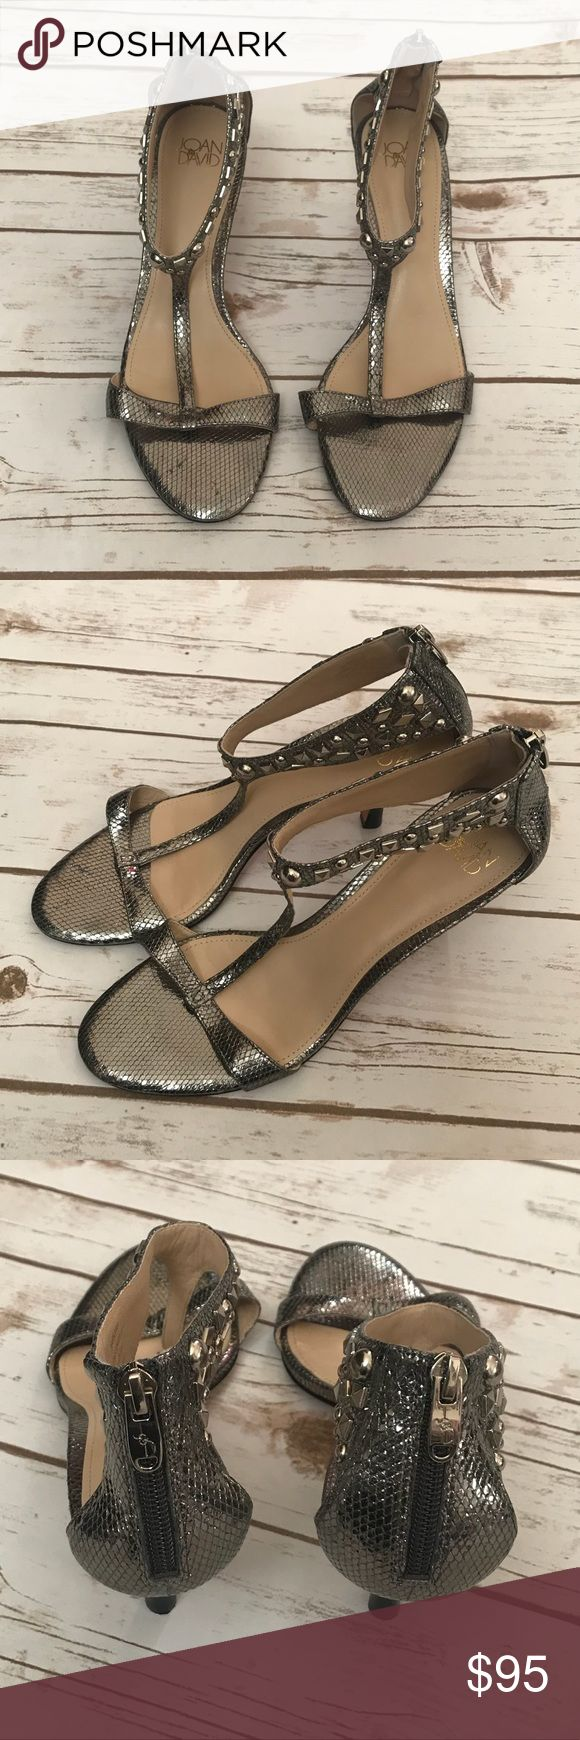 Joan & David Metallic Sandals Metallic leather sandals, with rhinestone decor on ankle strap, size 8.5 Joan & David Shoes Sandals